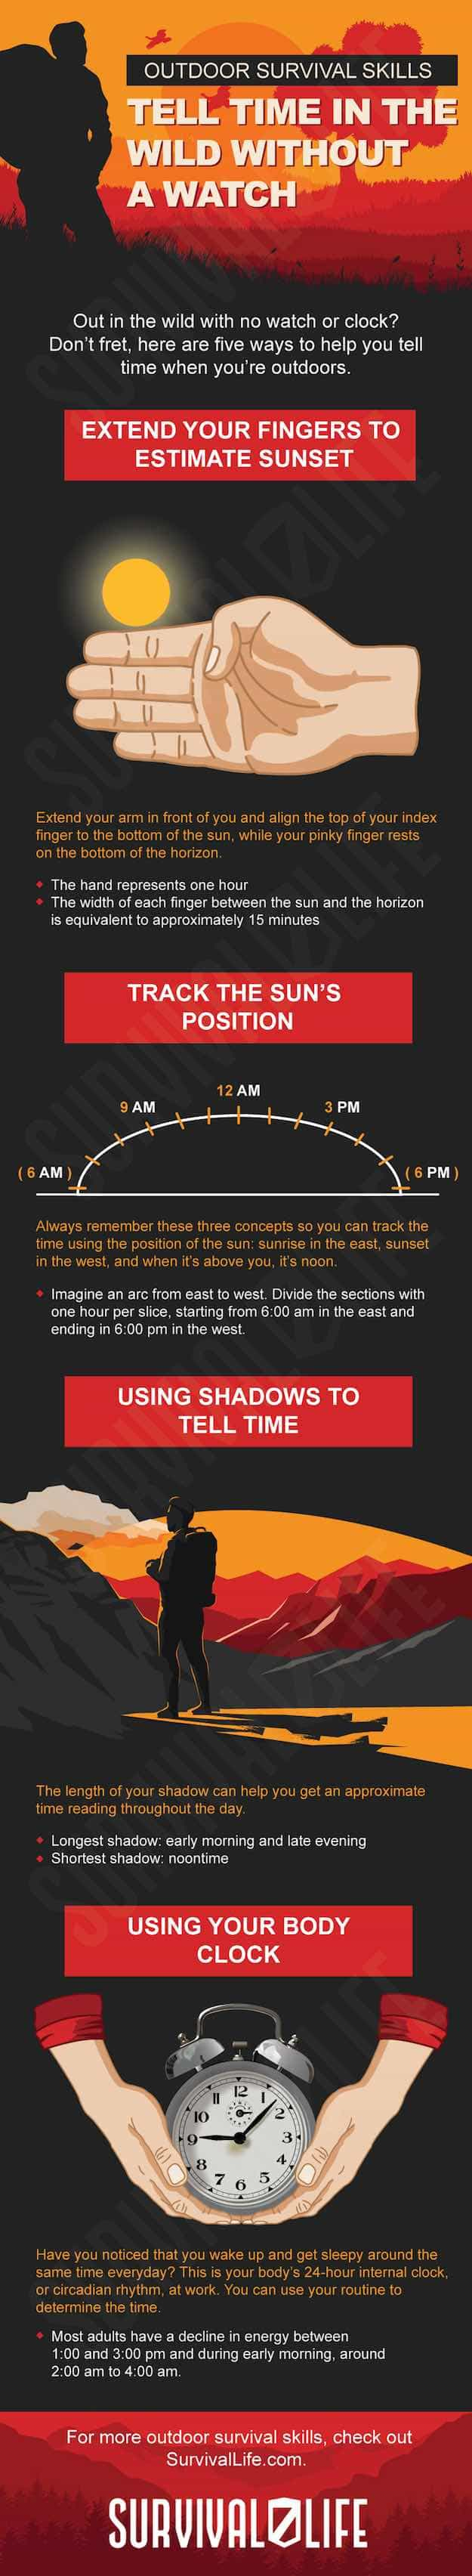 Infographic | Outdoor Survival Skills | Tell Time In The Wild Without A Watch